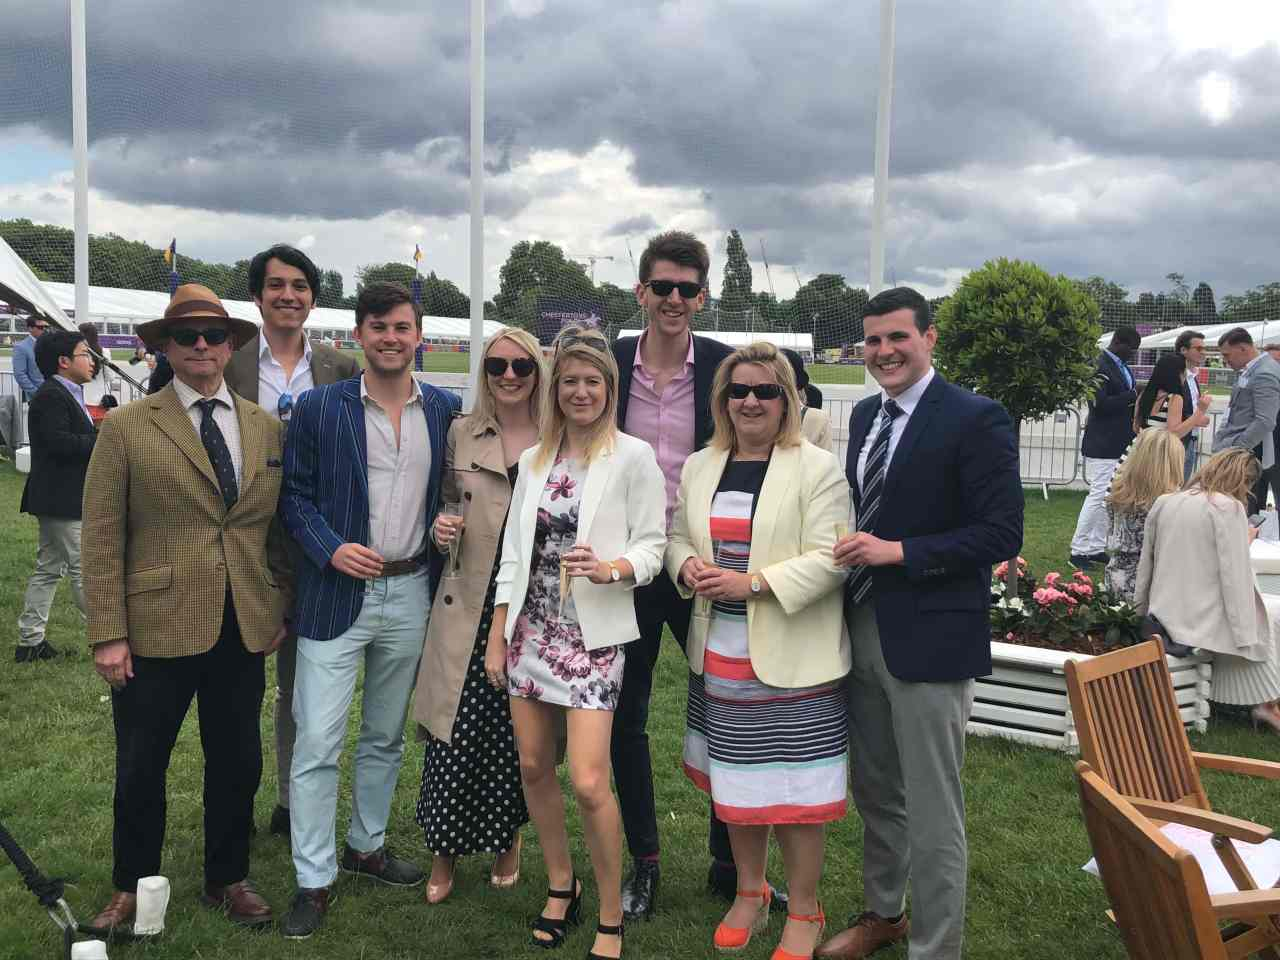 Group photo polo in the park